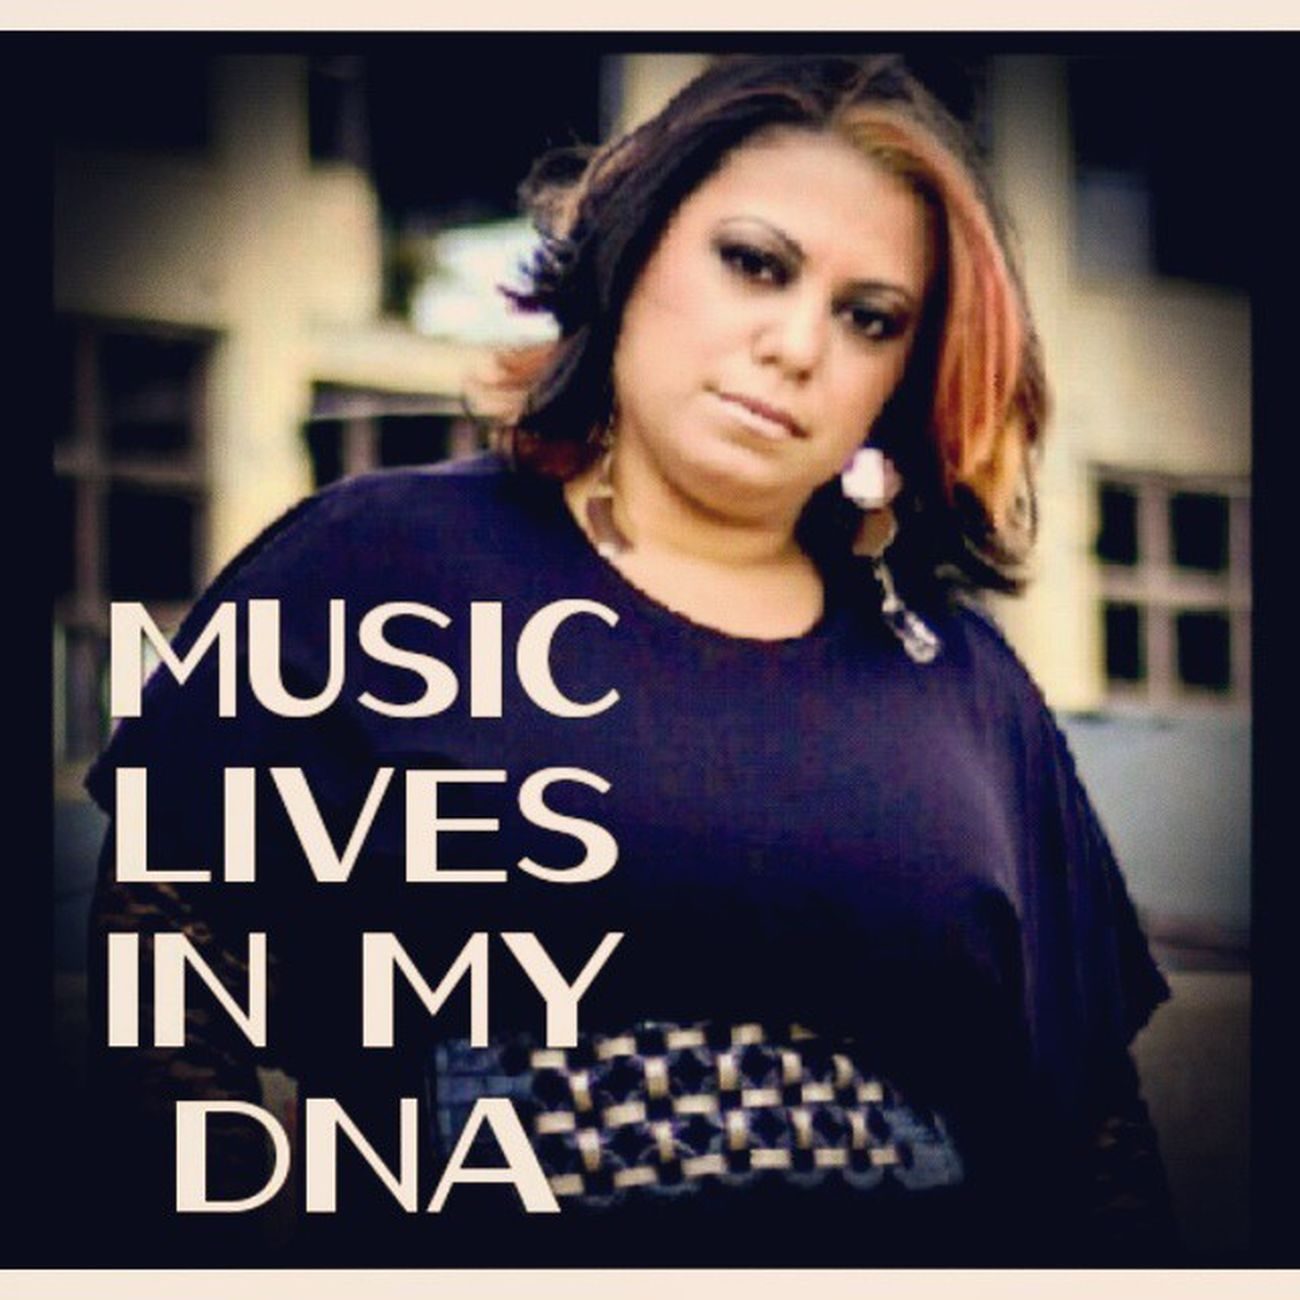 Dna Music Musicismypassion Artist soulsinger followingmydreams